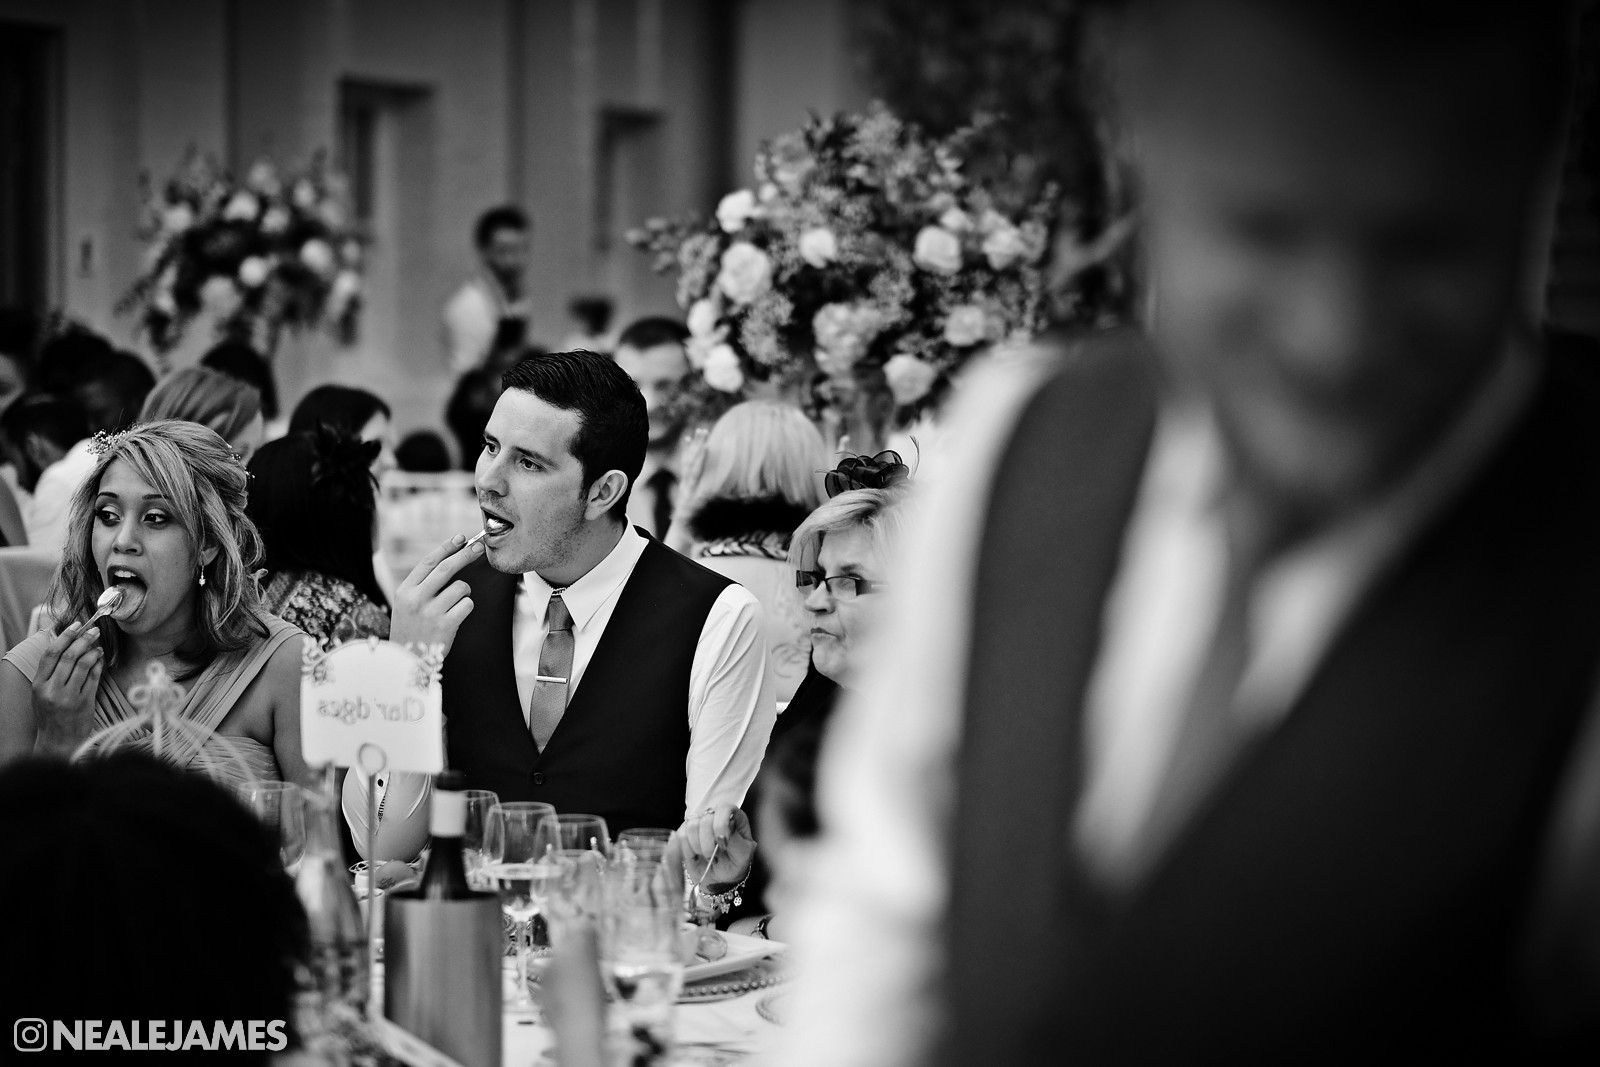 Monochrome image of guests mimicking each other as they eat